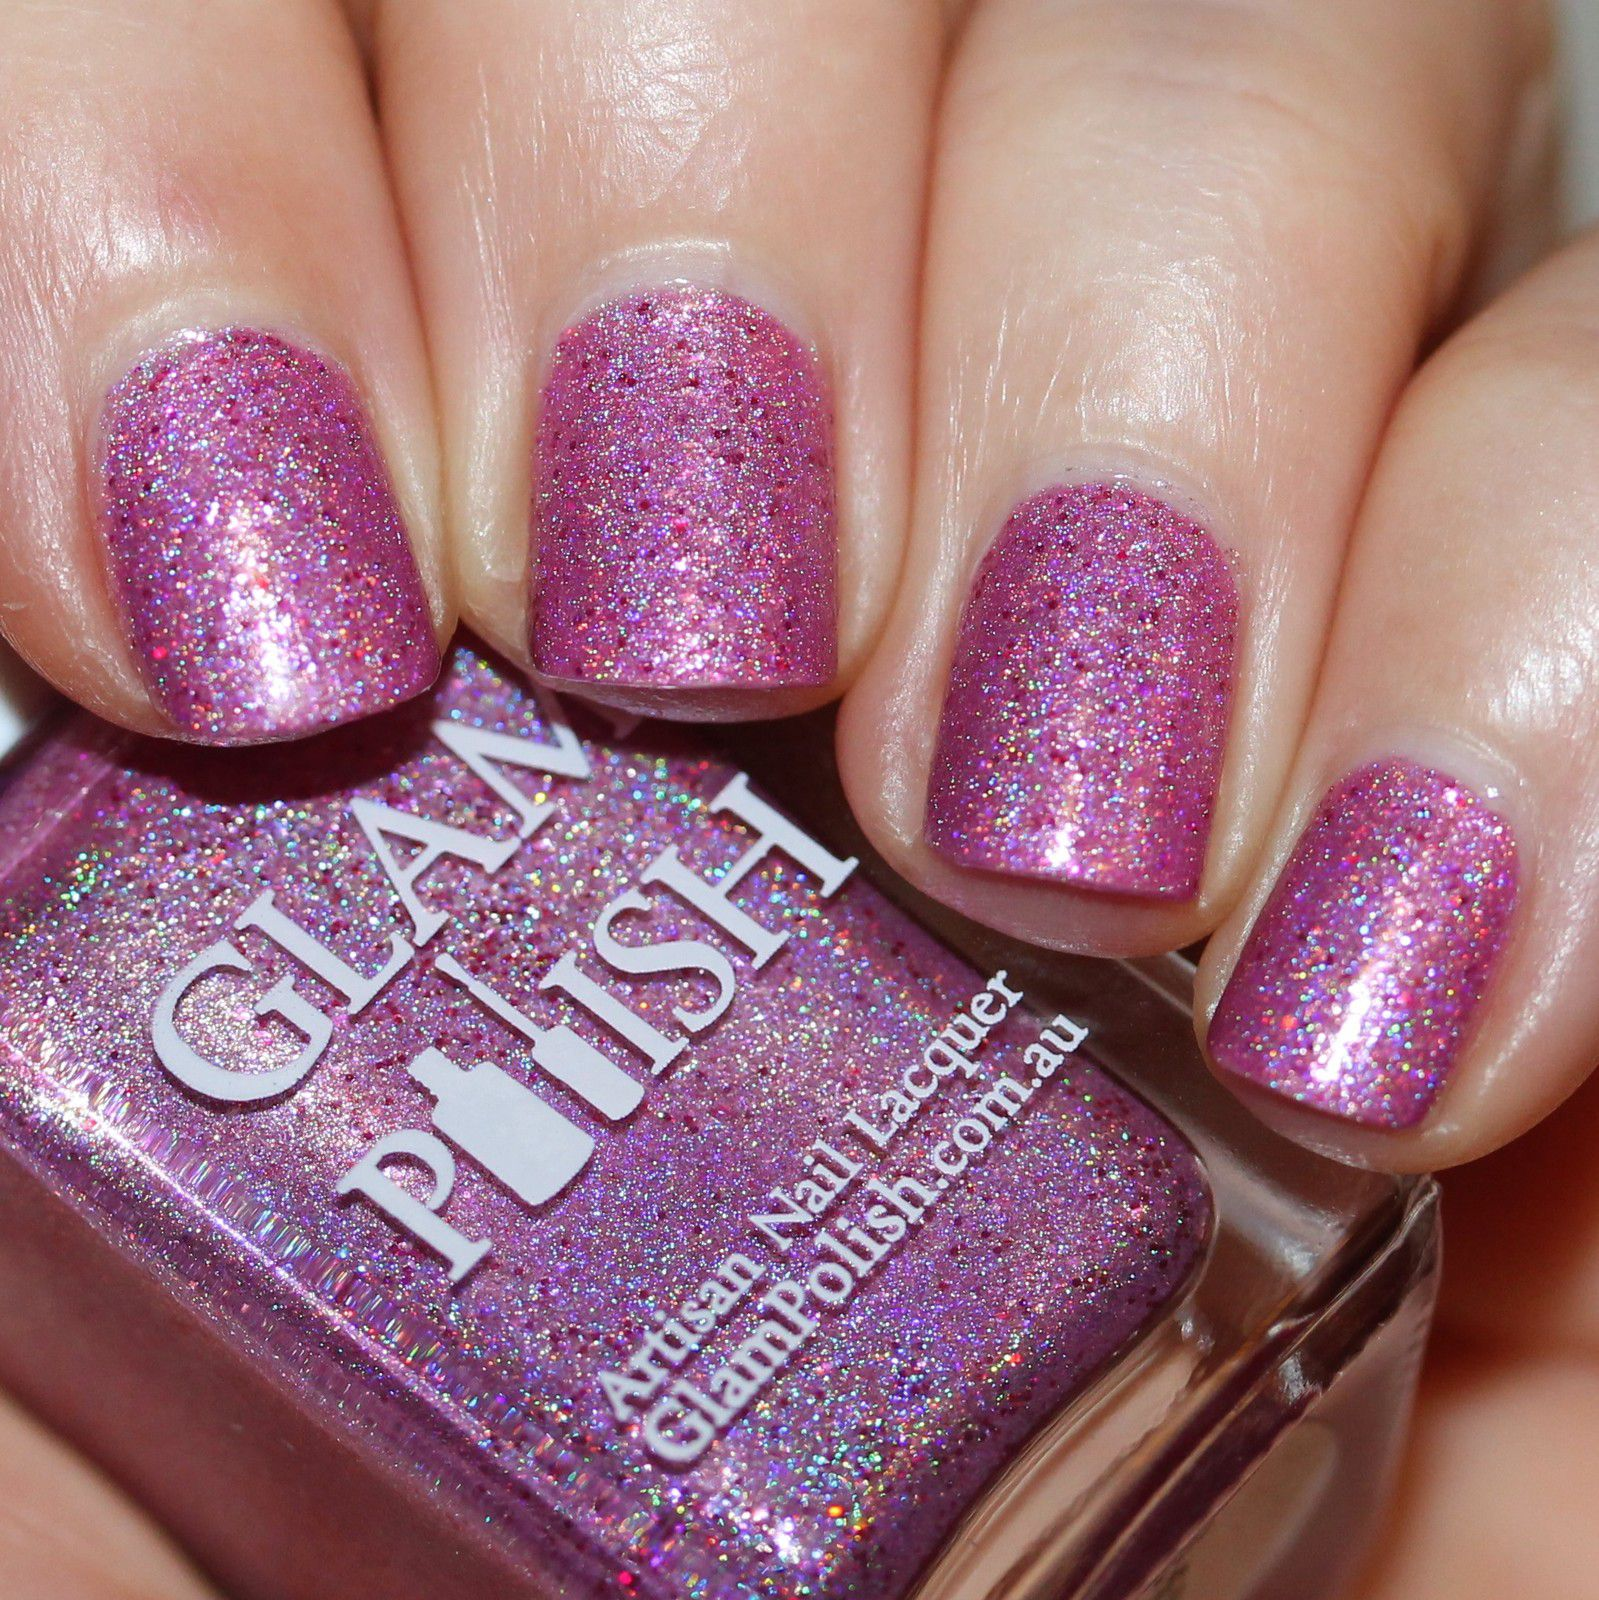 Essie Protein Base Coat / Glam Polish Did You Catch That? / HK Girl Top Coat